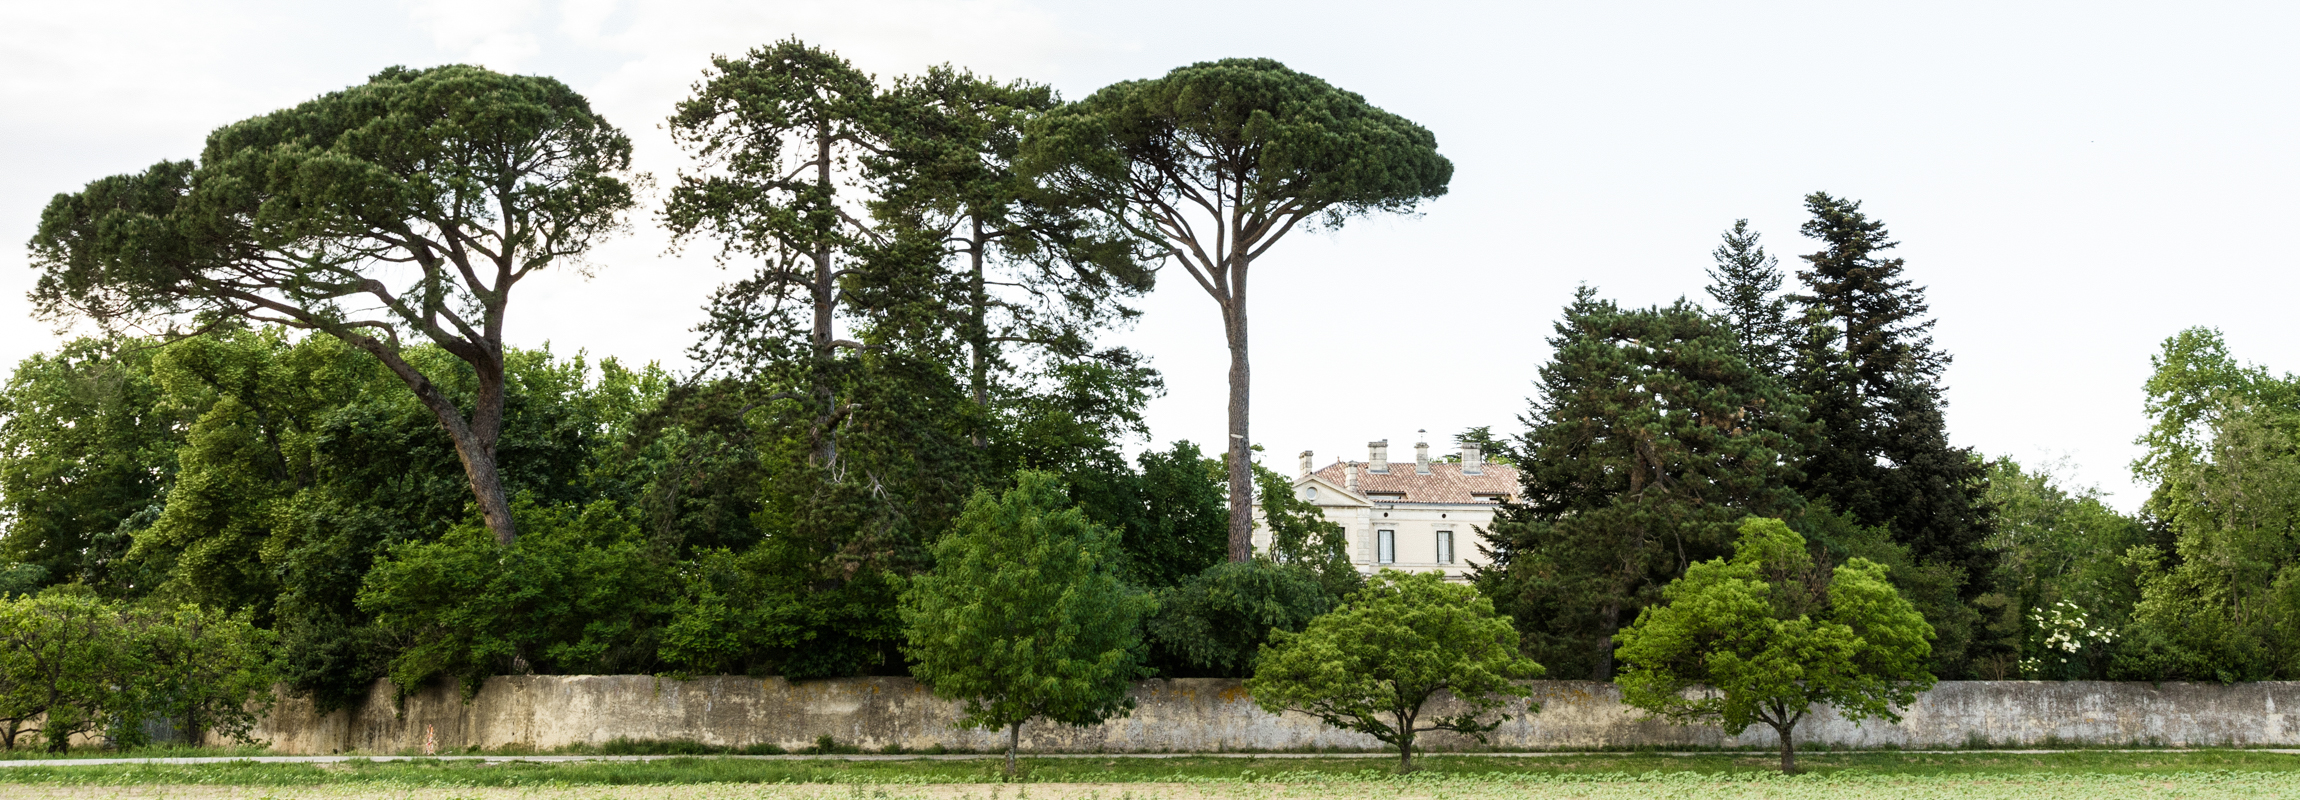 The picture shows the first view one has of hotel Chateau de Montcaud, from the direction of Bagnol-sur-Cèze. Located in Provence, in the south of France, the chateau hotel is surrounded by a magnificent park with centuries-old trees and a historical wall.